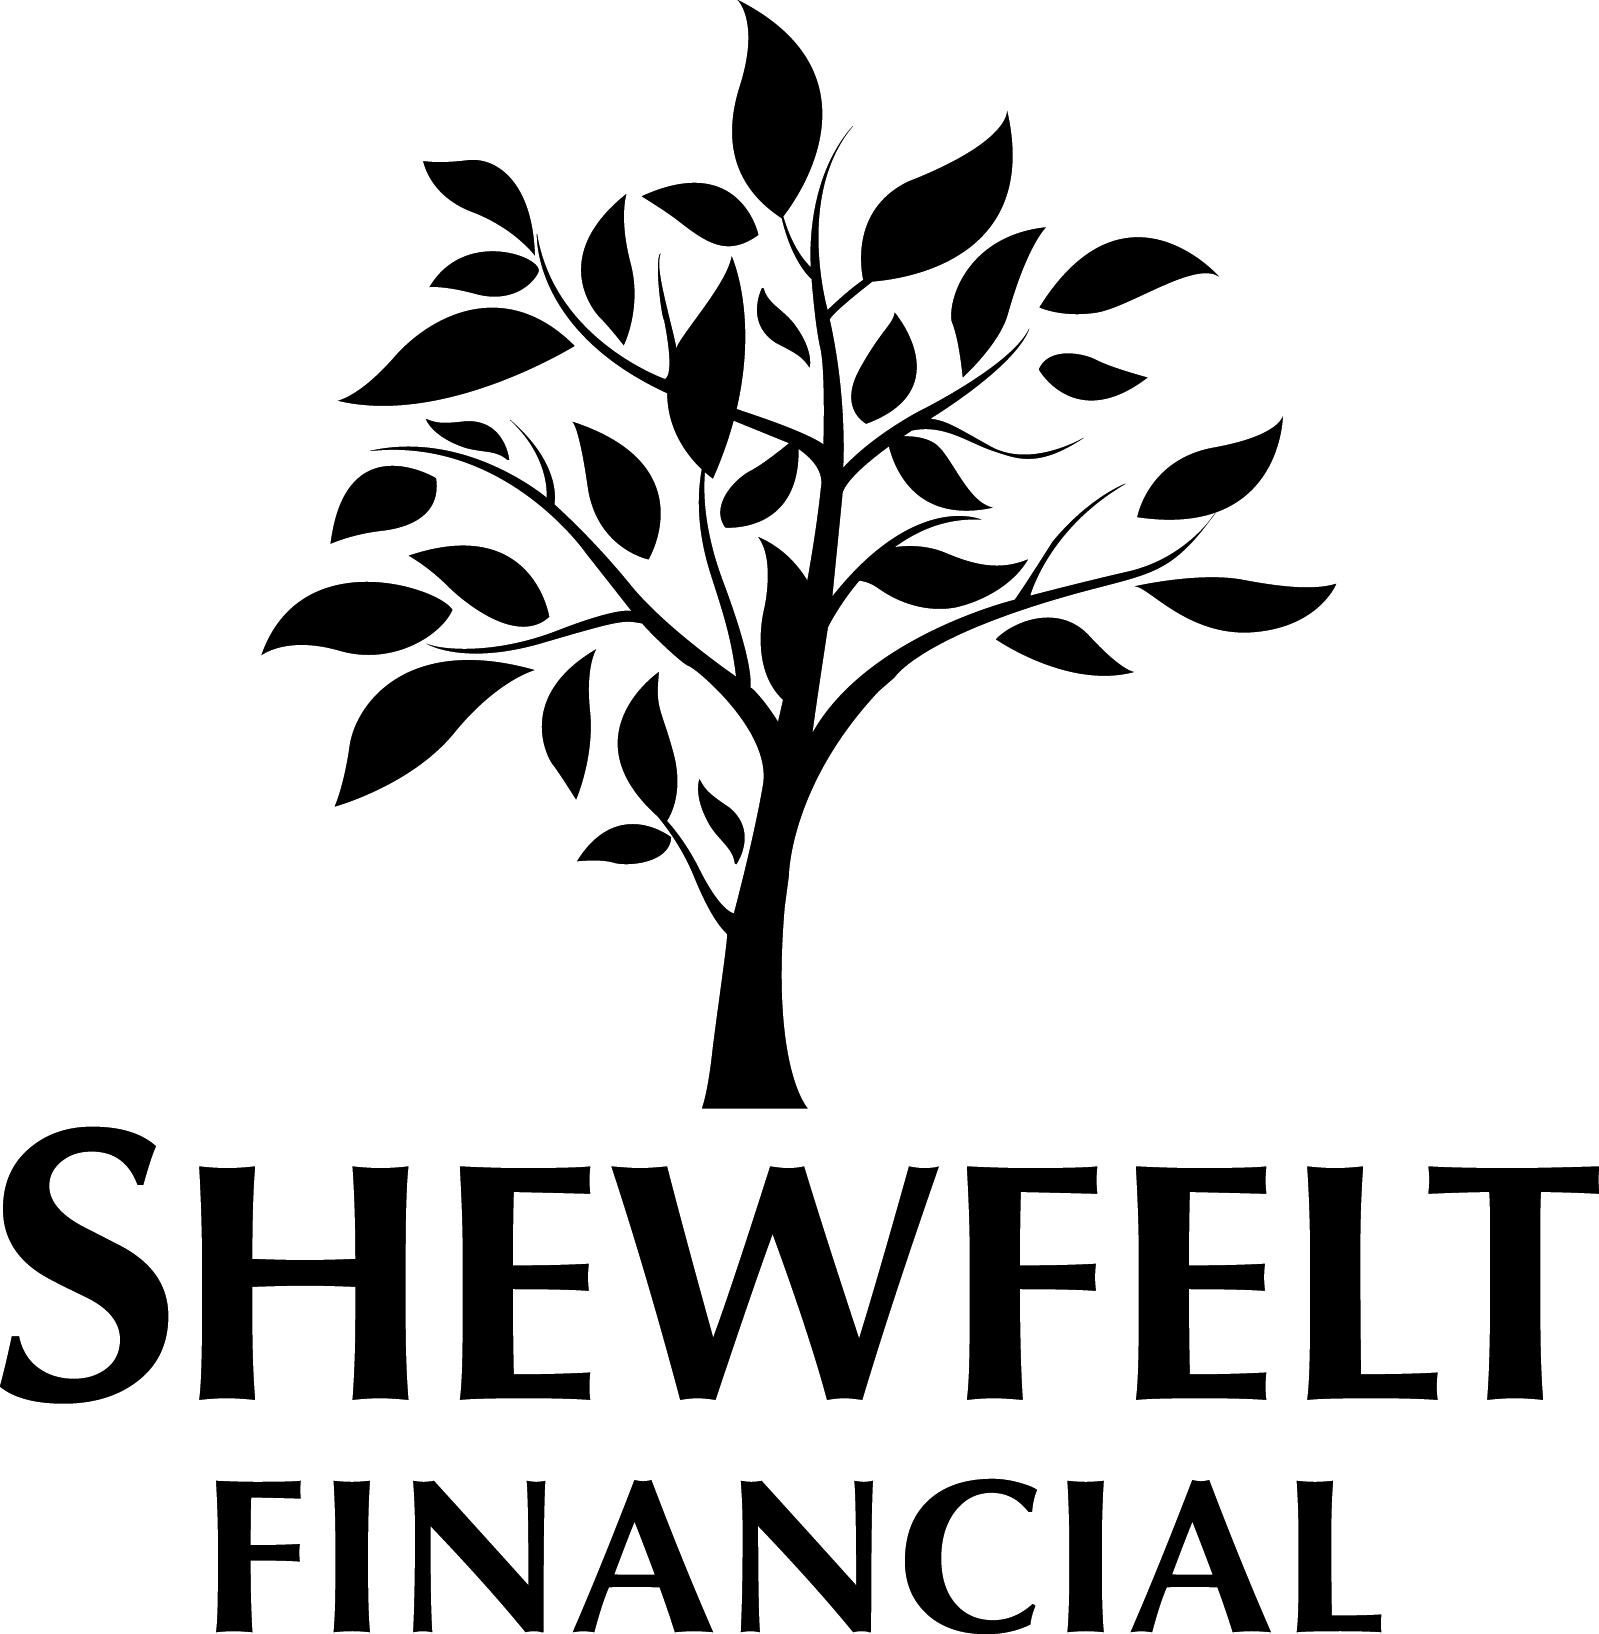 Shewfelt Financial - Freedom 55 logo